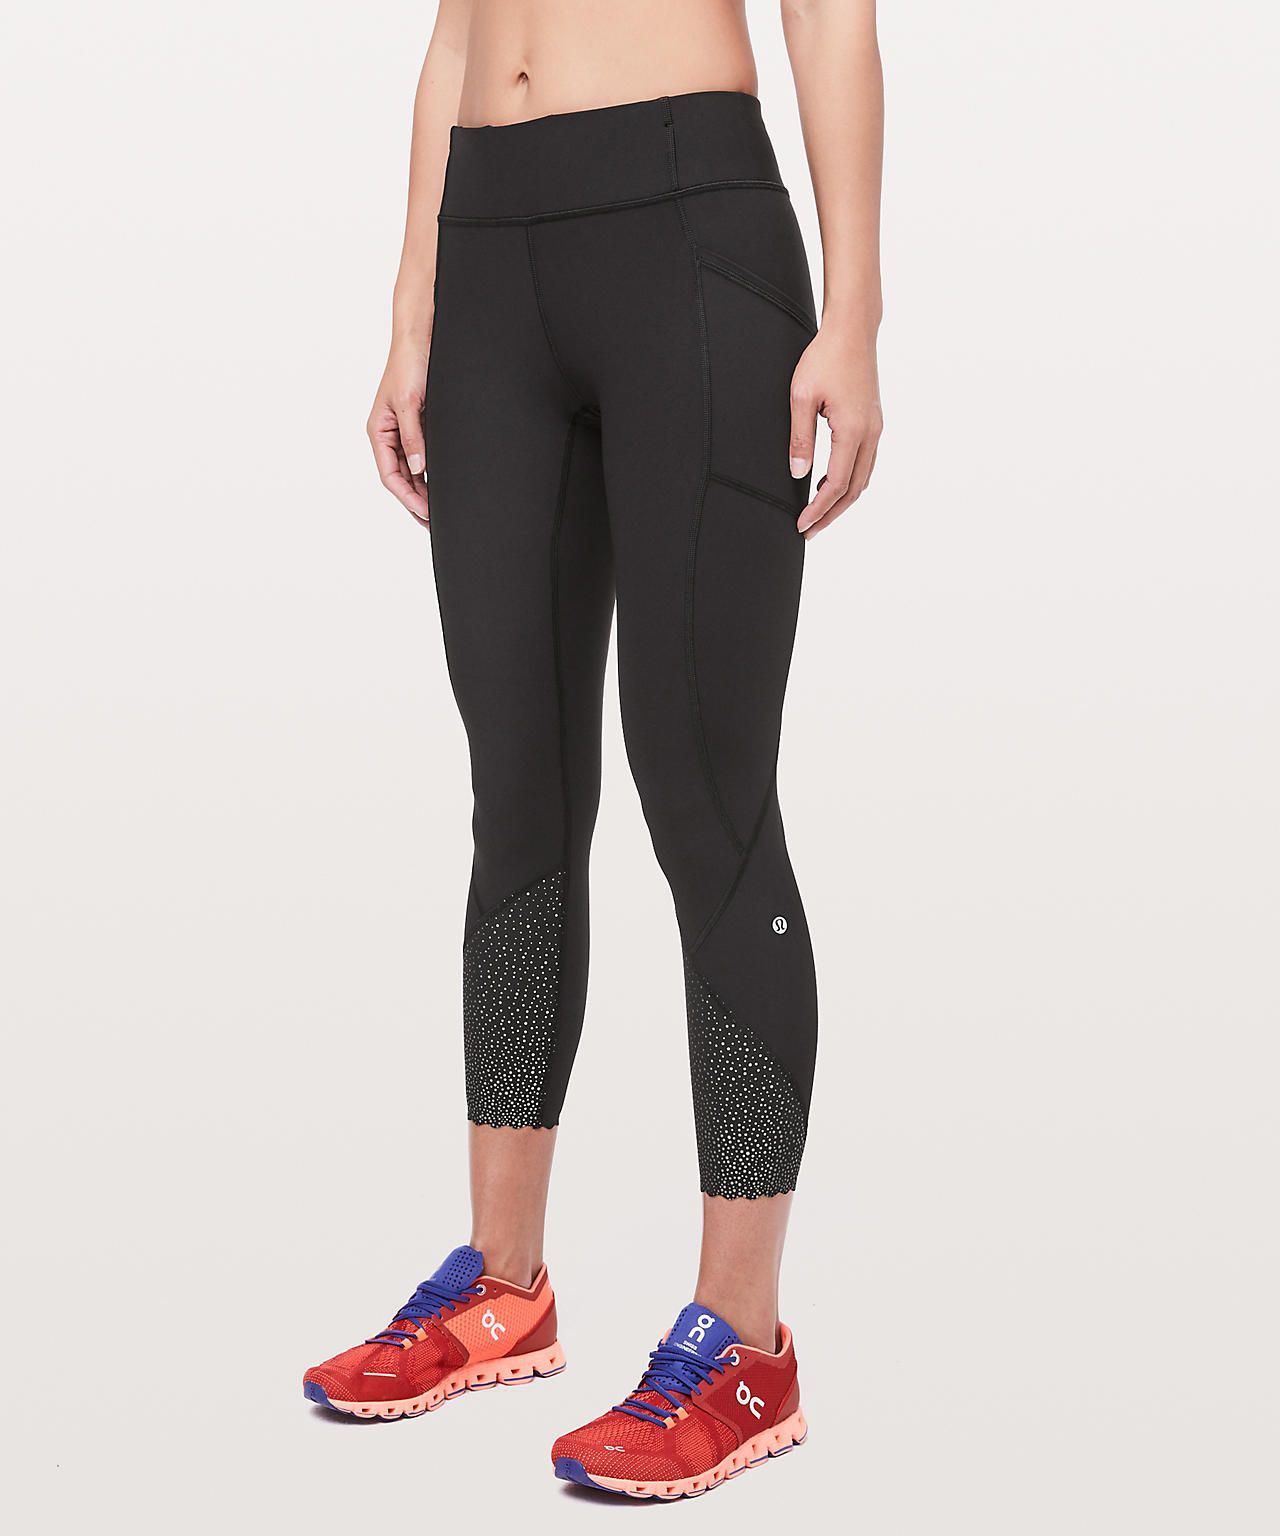 ad93855fc Lululemon Tight Stuff Tight II 25  Online Only in 2019